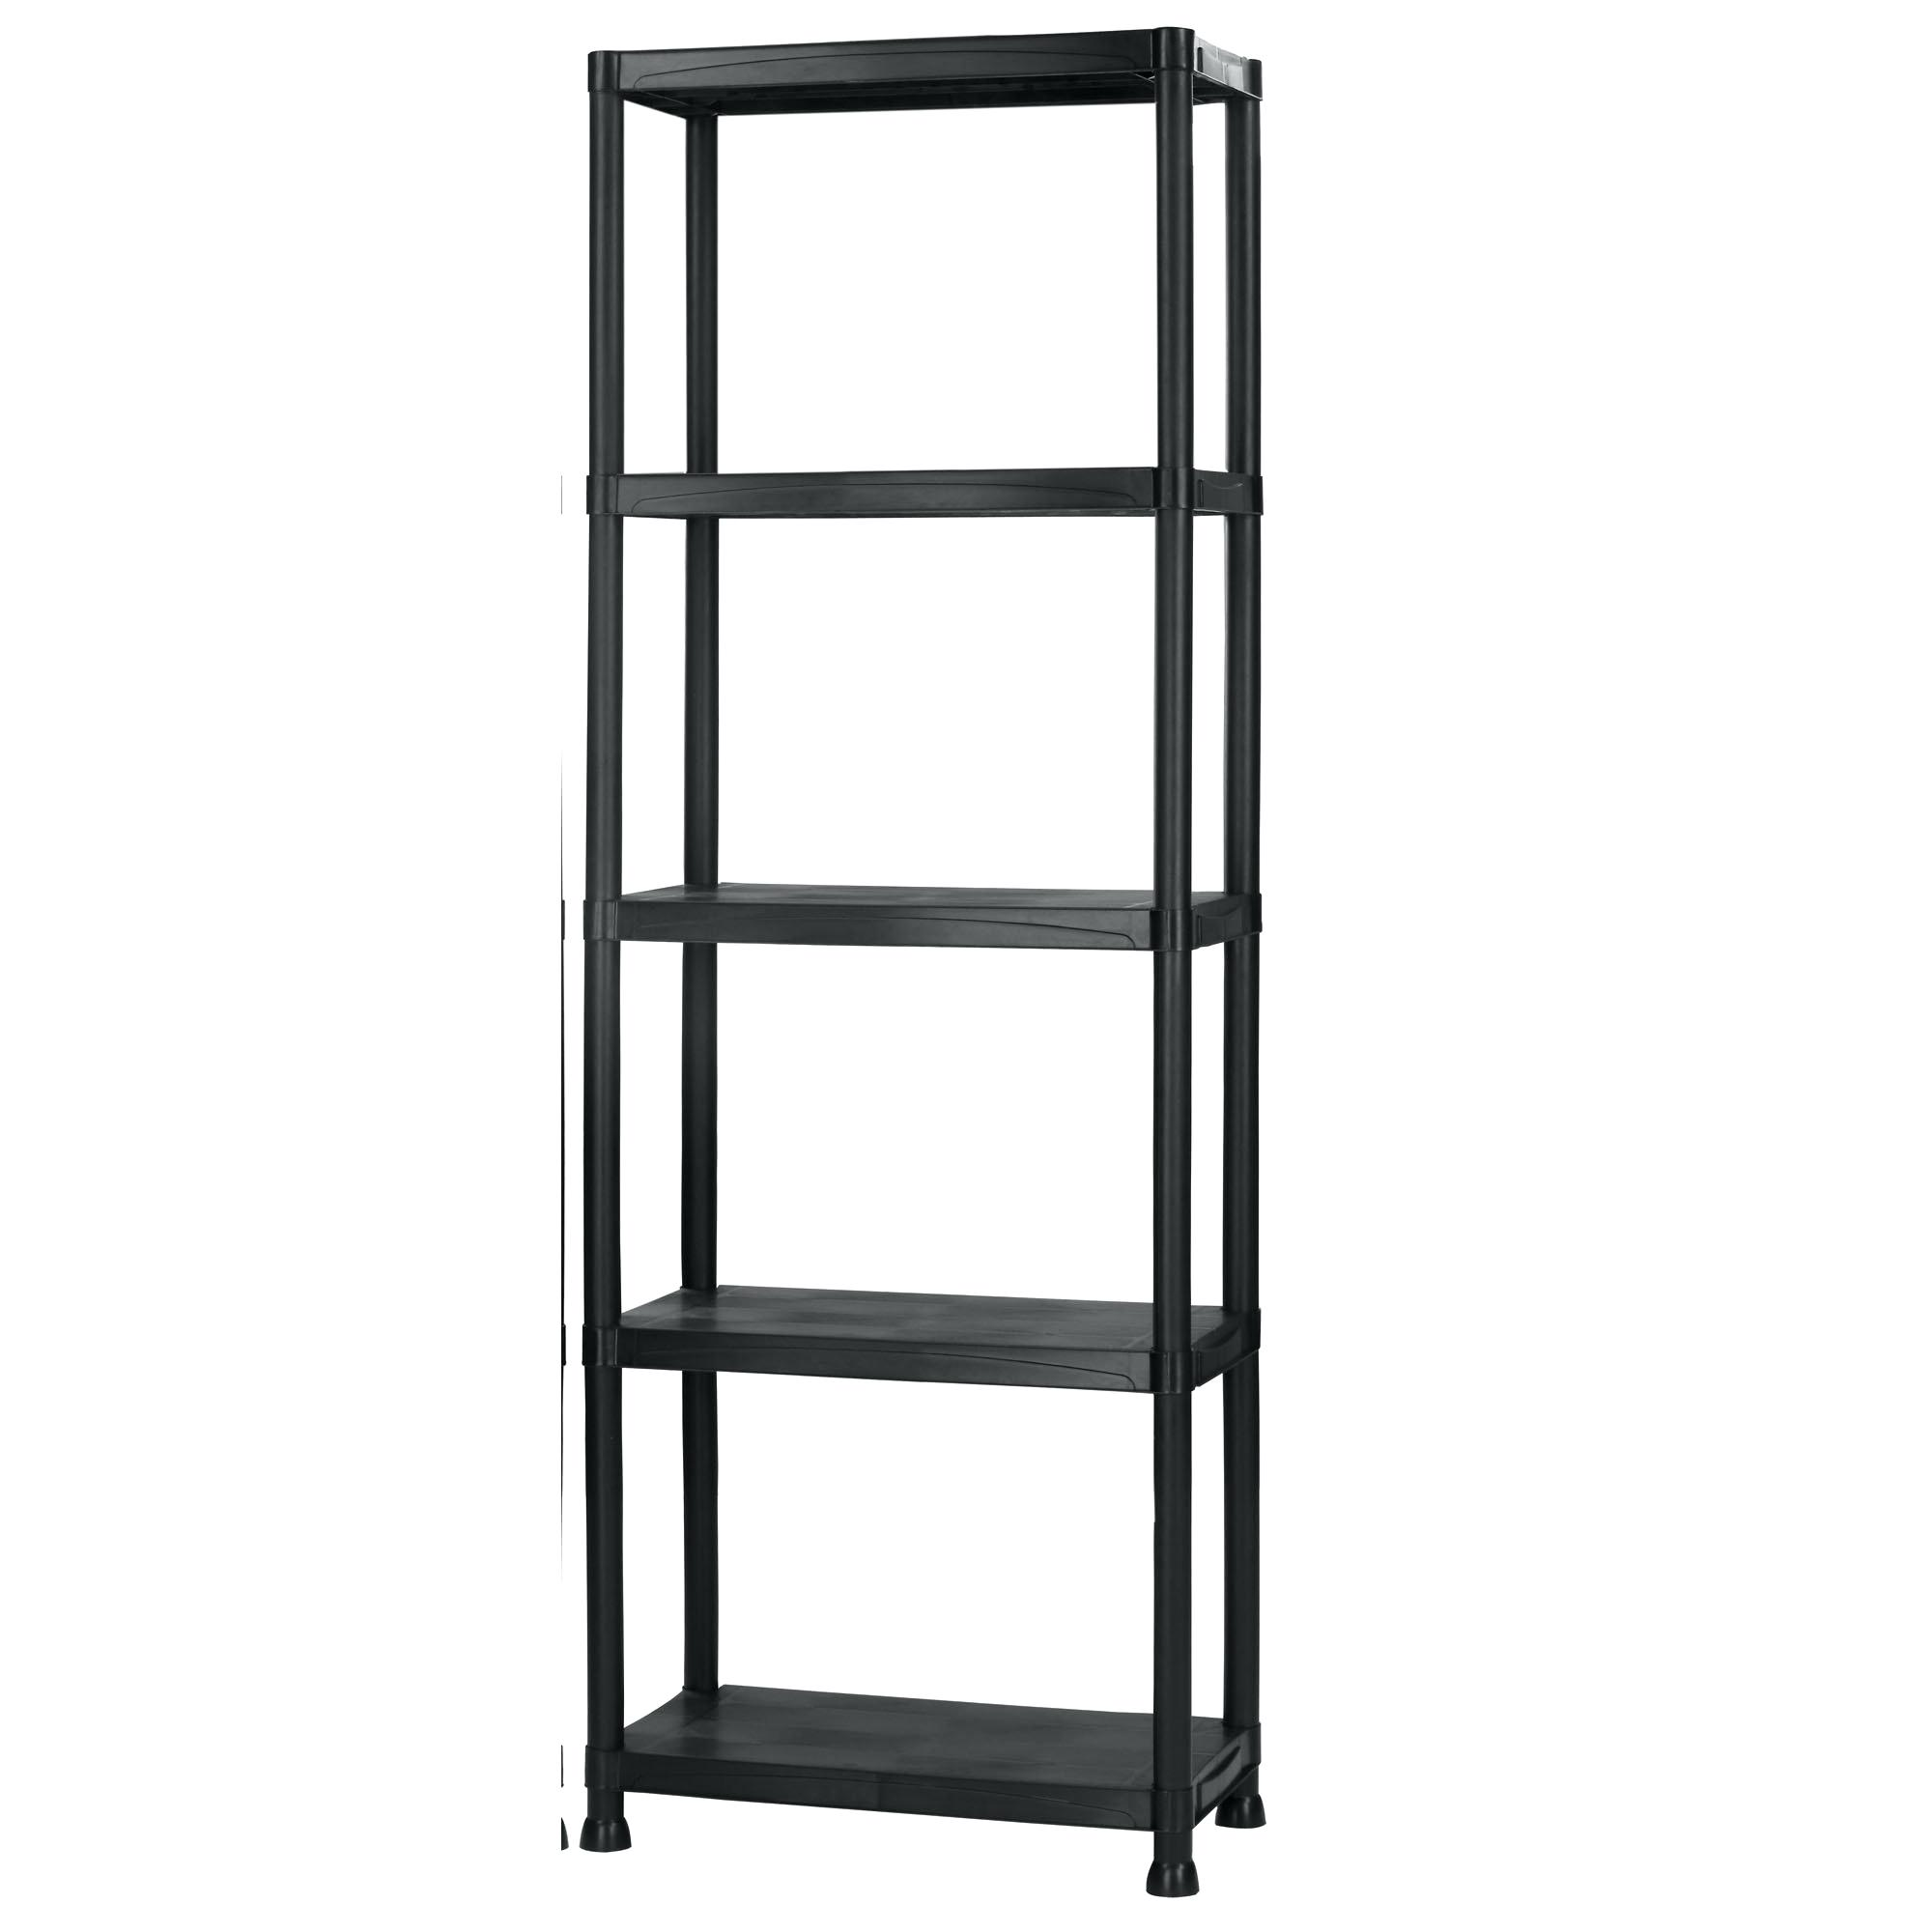 Wire Shelving Units Walmart | Walmart Storage Shelves Garage | Walmart Shelving